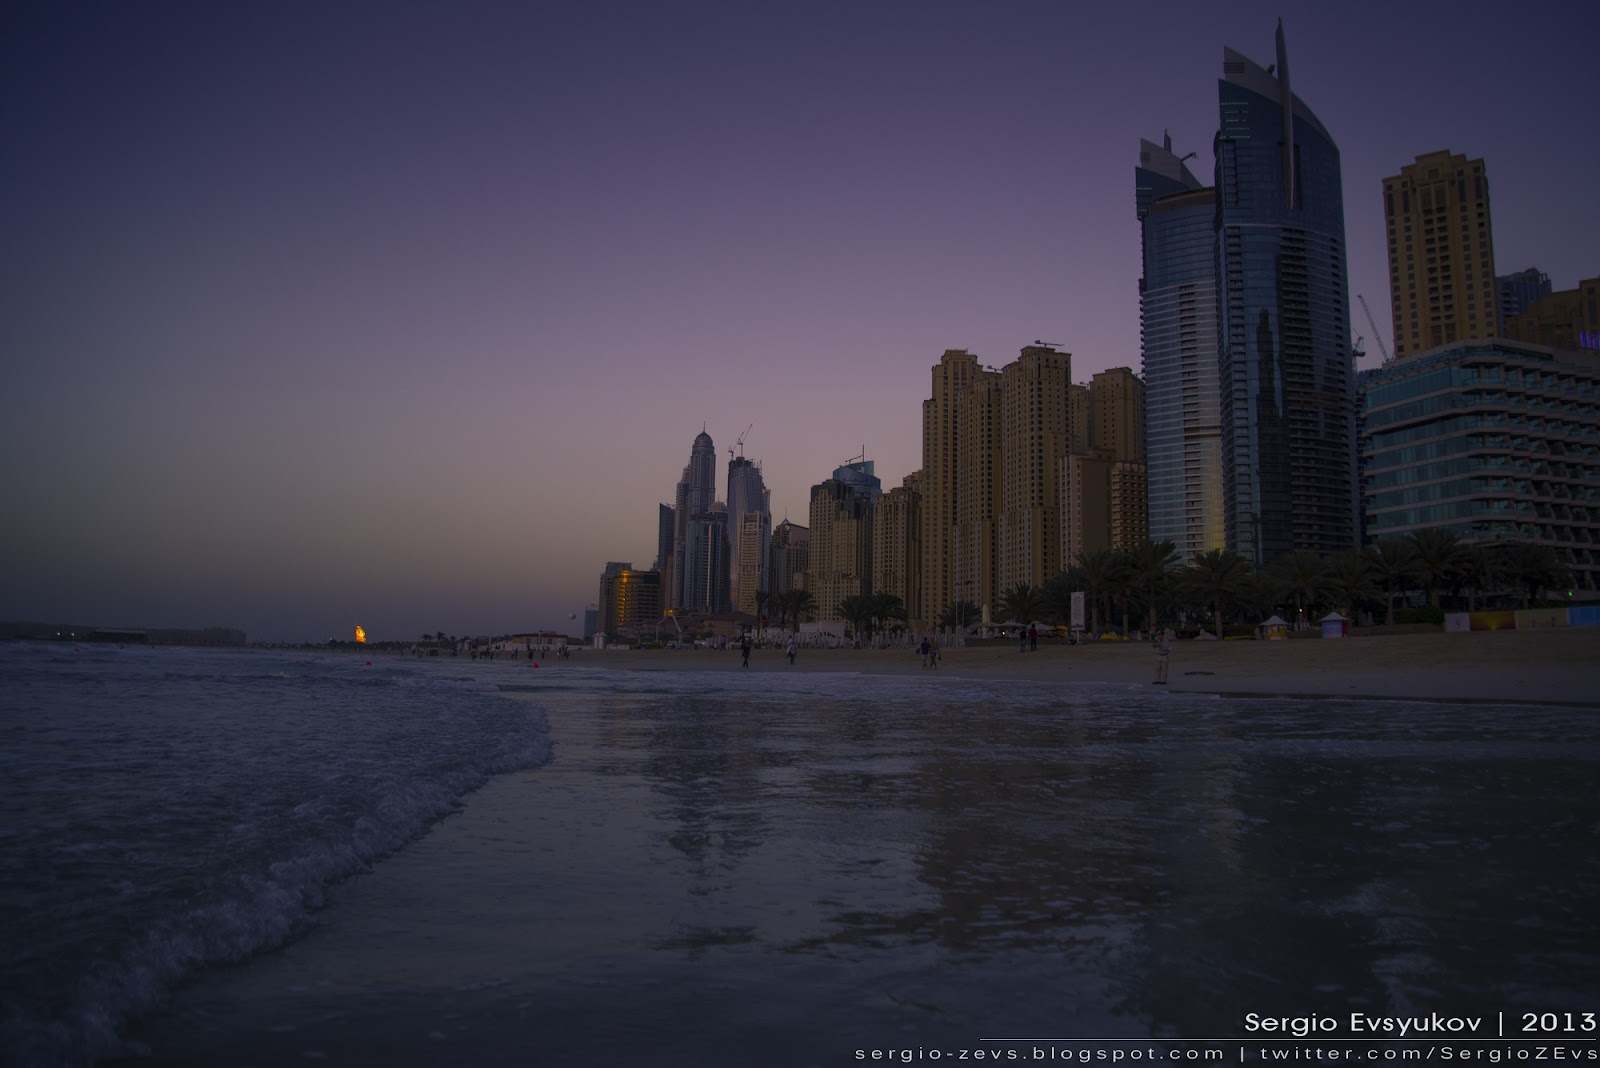 Arabian Gulf in the UAE